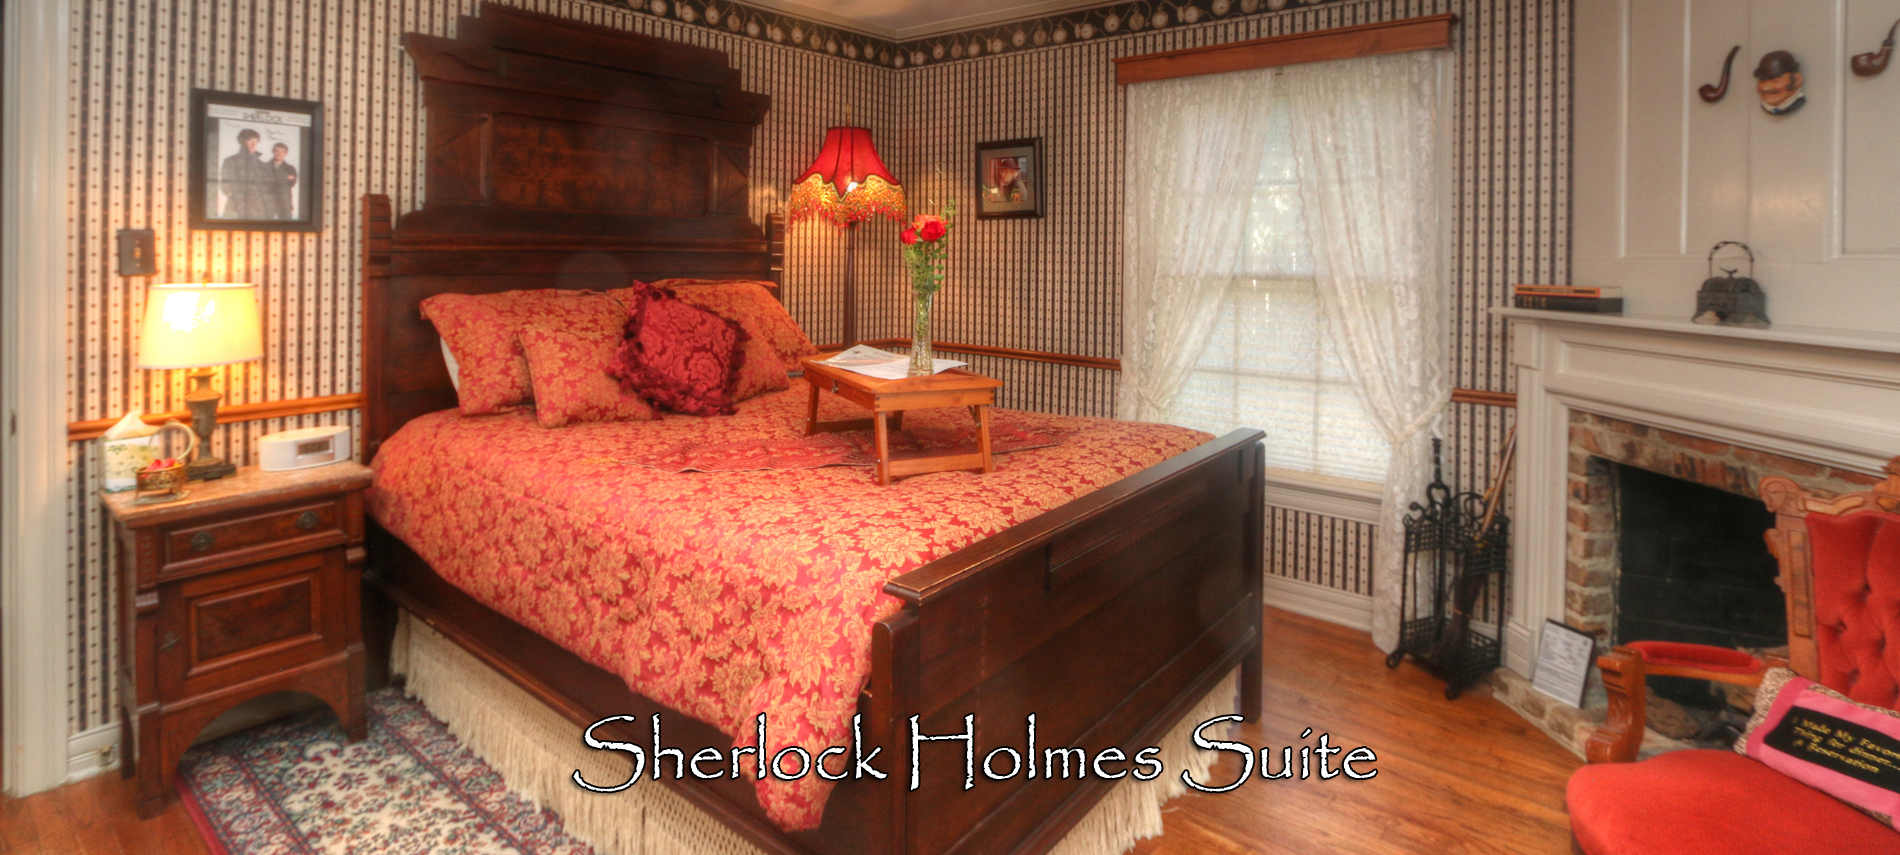 our bed breakfast accommodations in tyler texas